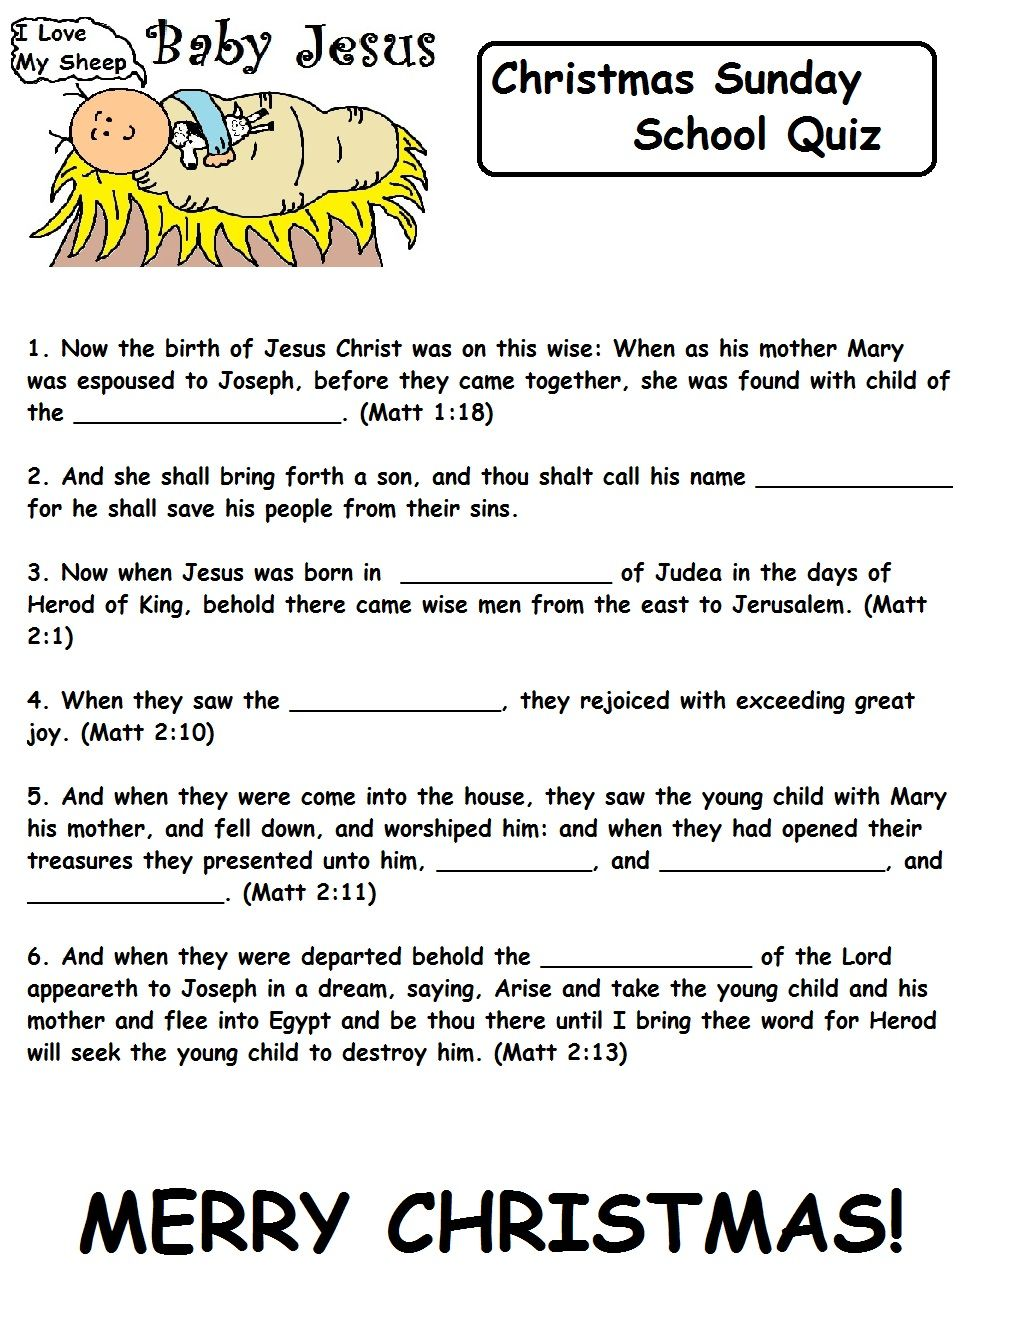 Christmas Quizzes For Sunday School Christmas quizzes